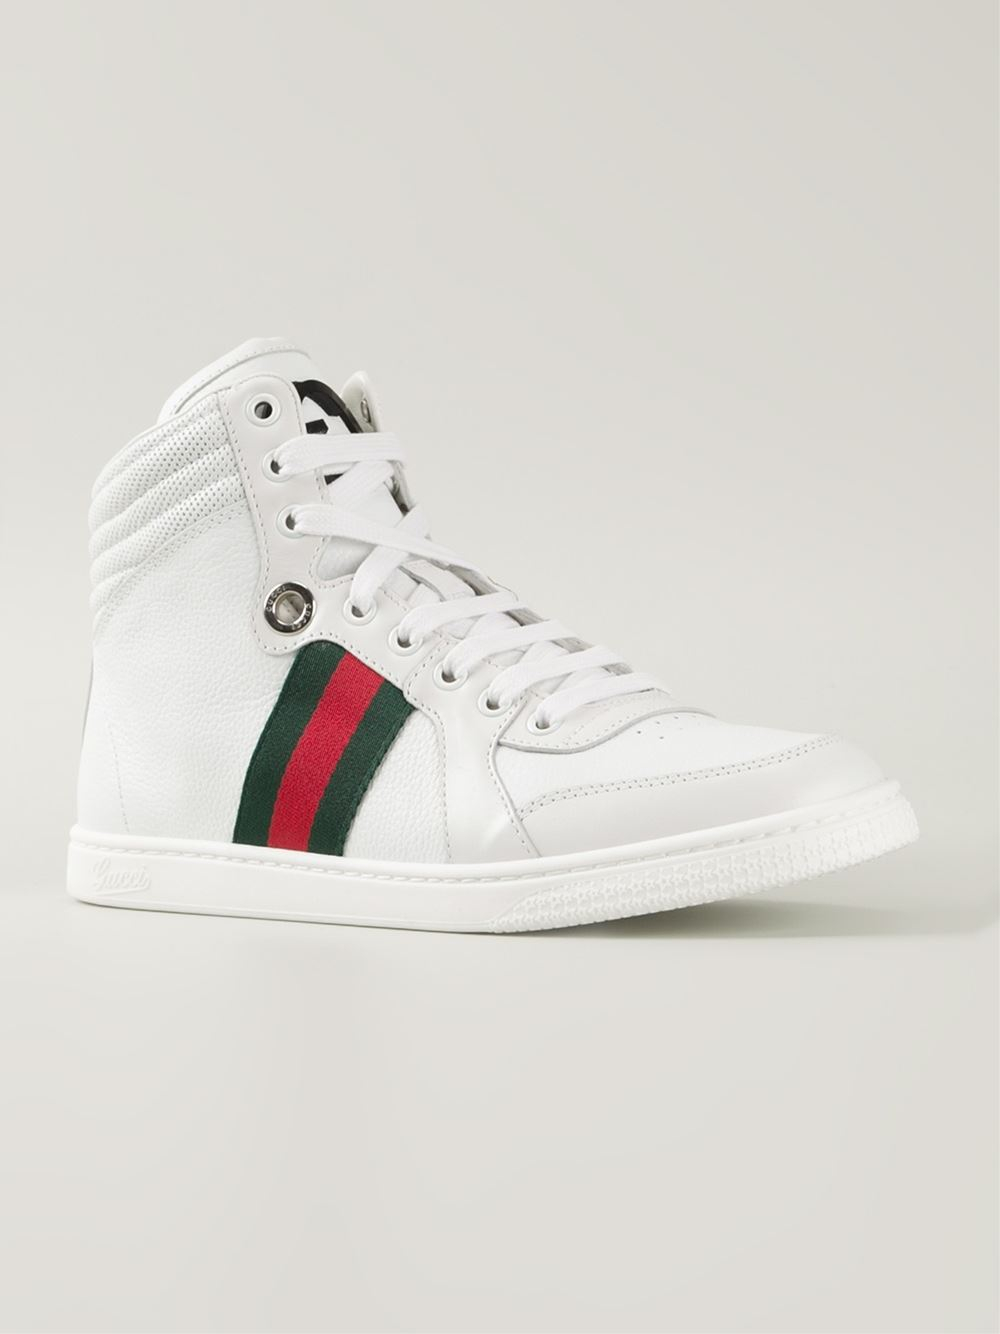 gucci 39 coda 39 hi top sneakers in white lyst. Black Bedroom Furniture Sets. Home Design Ideas